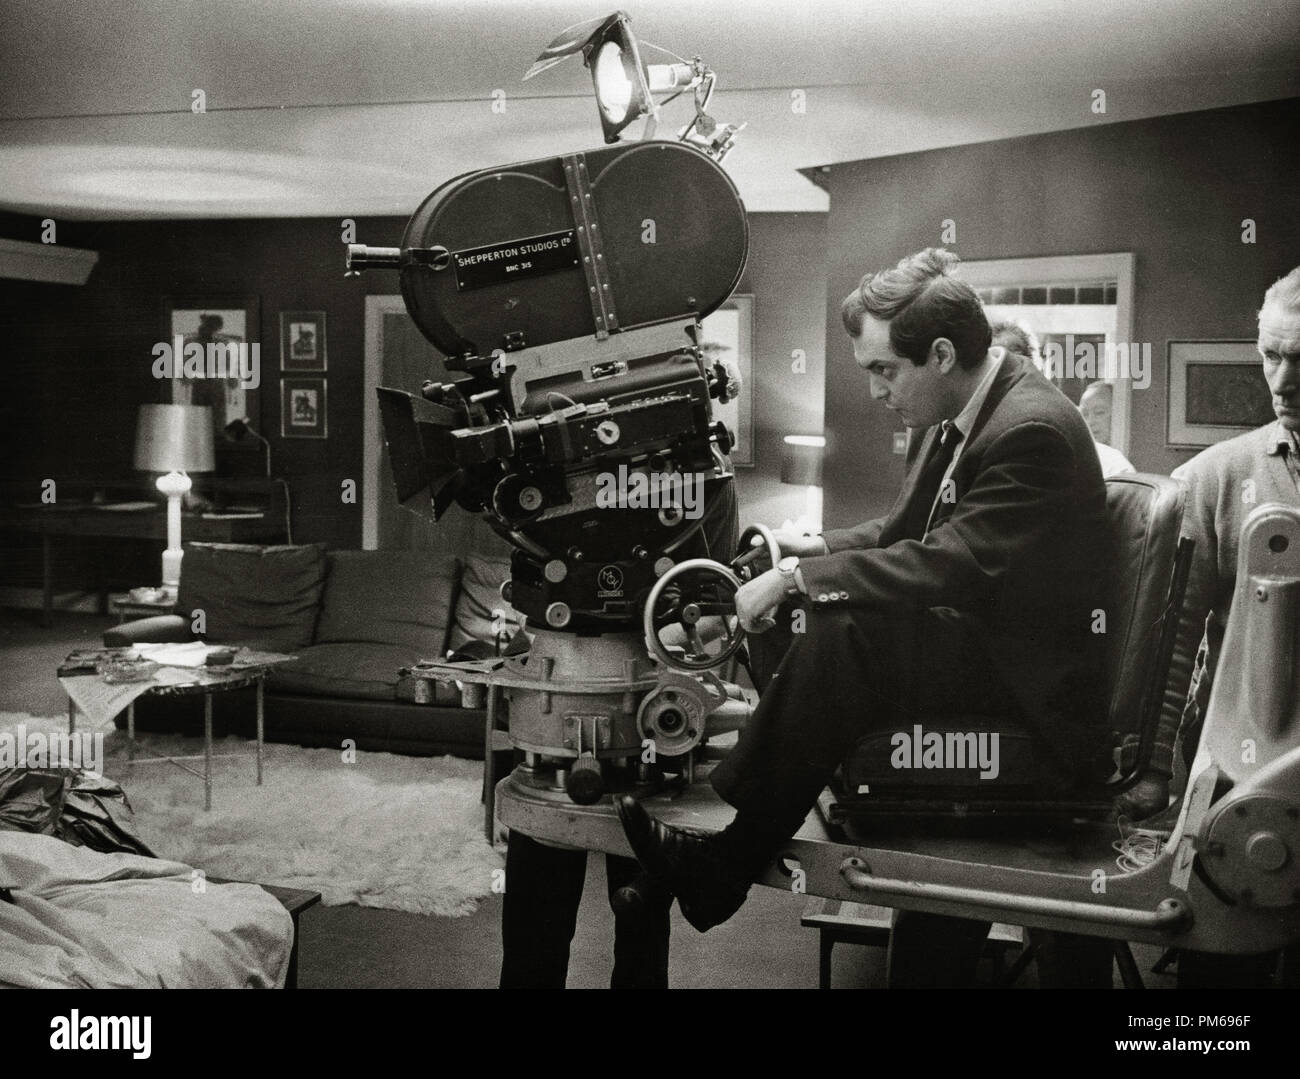 Director Stanley Kubrick, 'Dr. Strangelove or: How I Learned to Stop Worrying and Love the Bomb' 1964 Columbia  File Reference # 31316_173THA - Stock Image